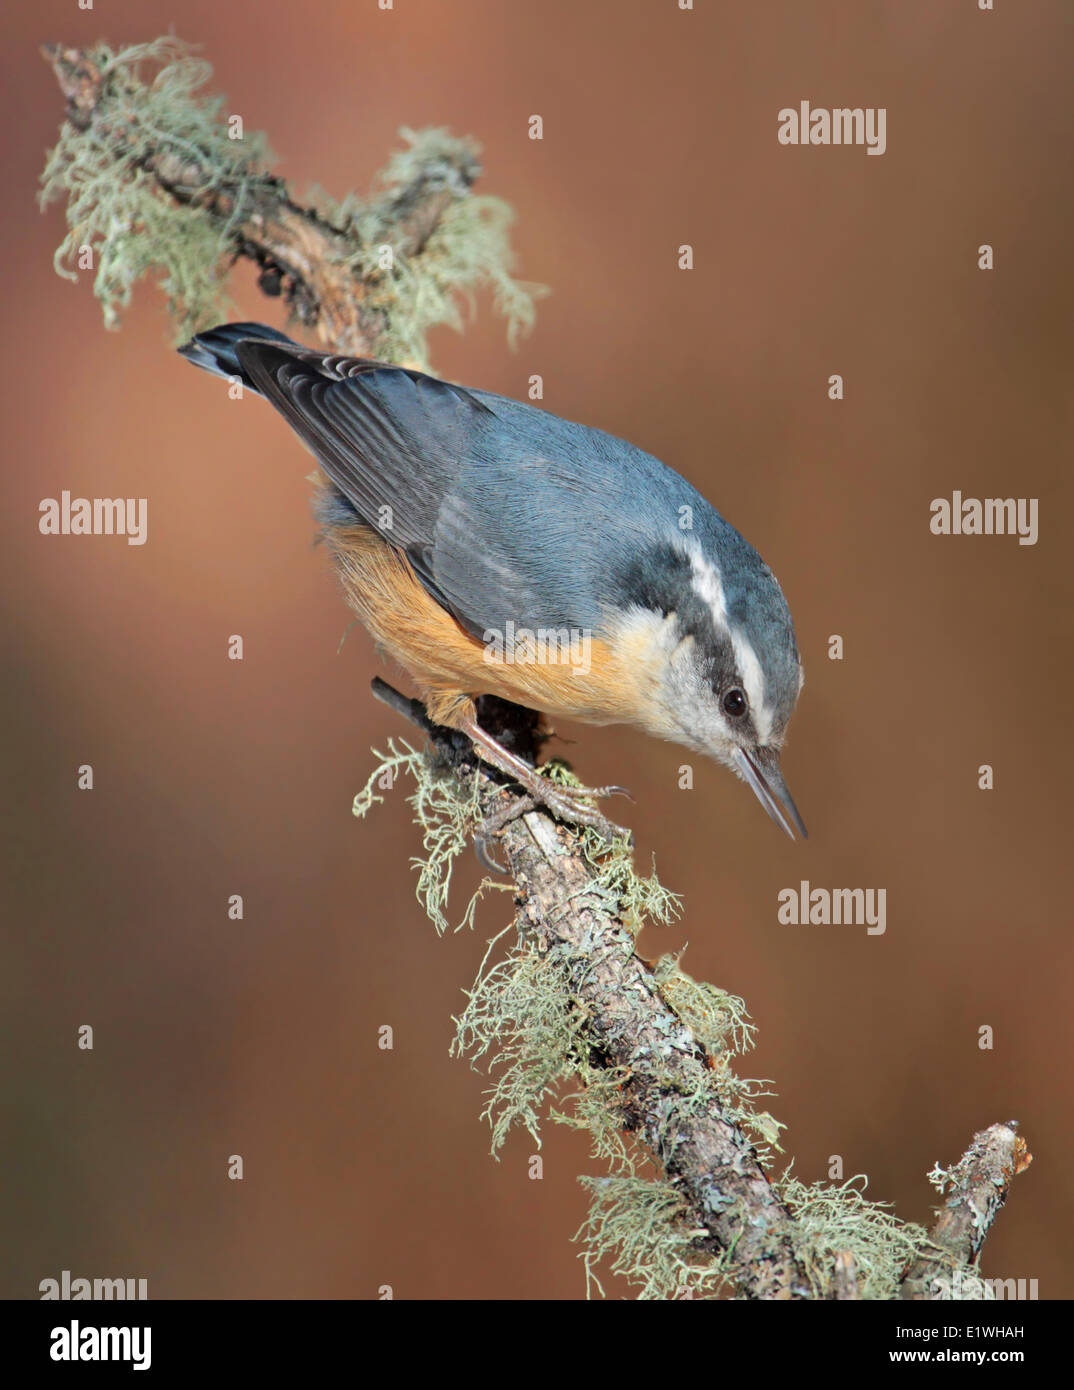 A Red-breasted Nuthatch, Sitta canadensis, perched on a lichen-covered twig, in Saskatchewan. Stock Photo